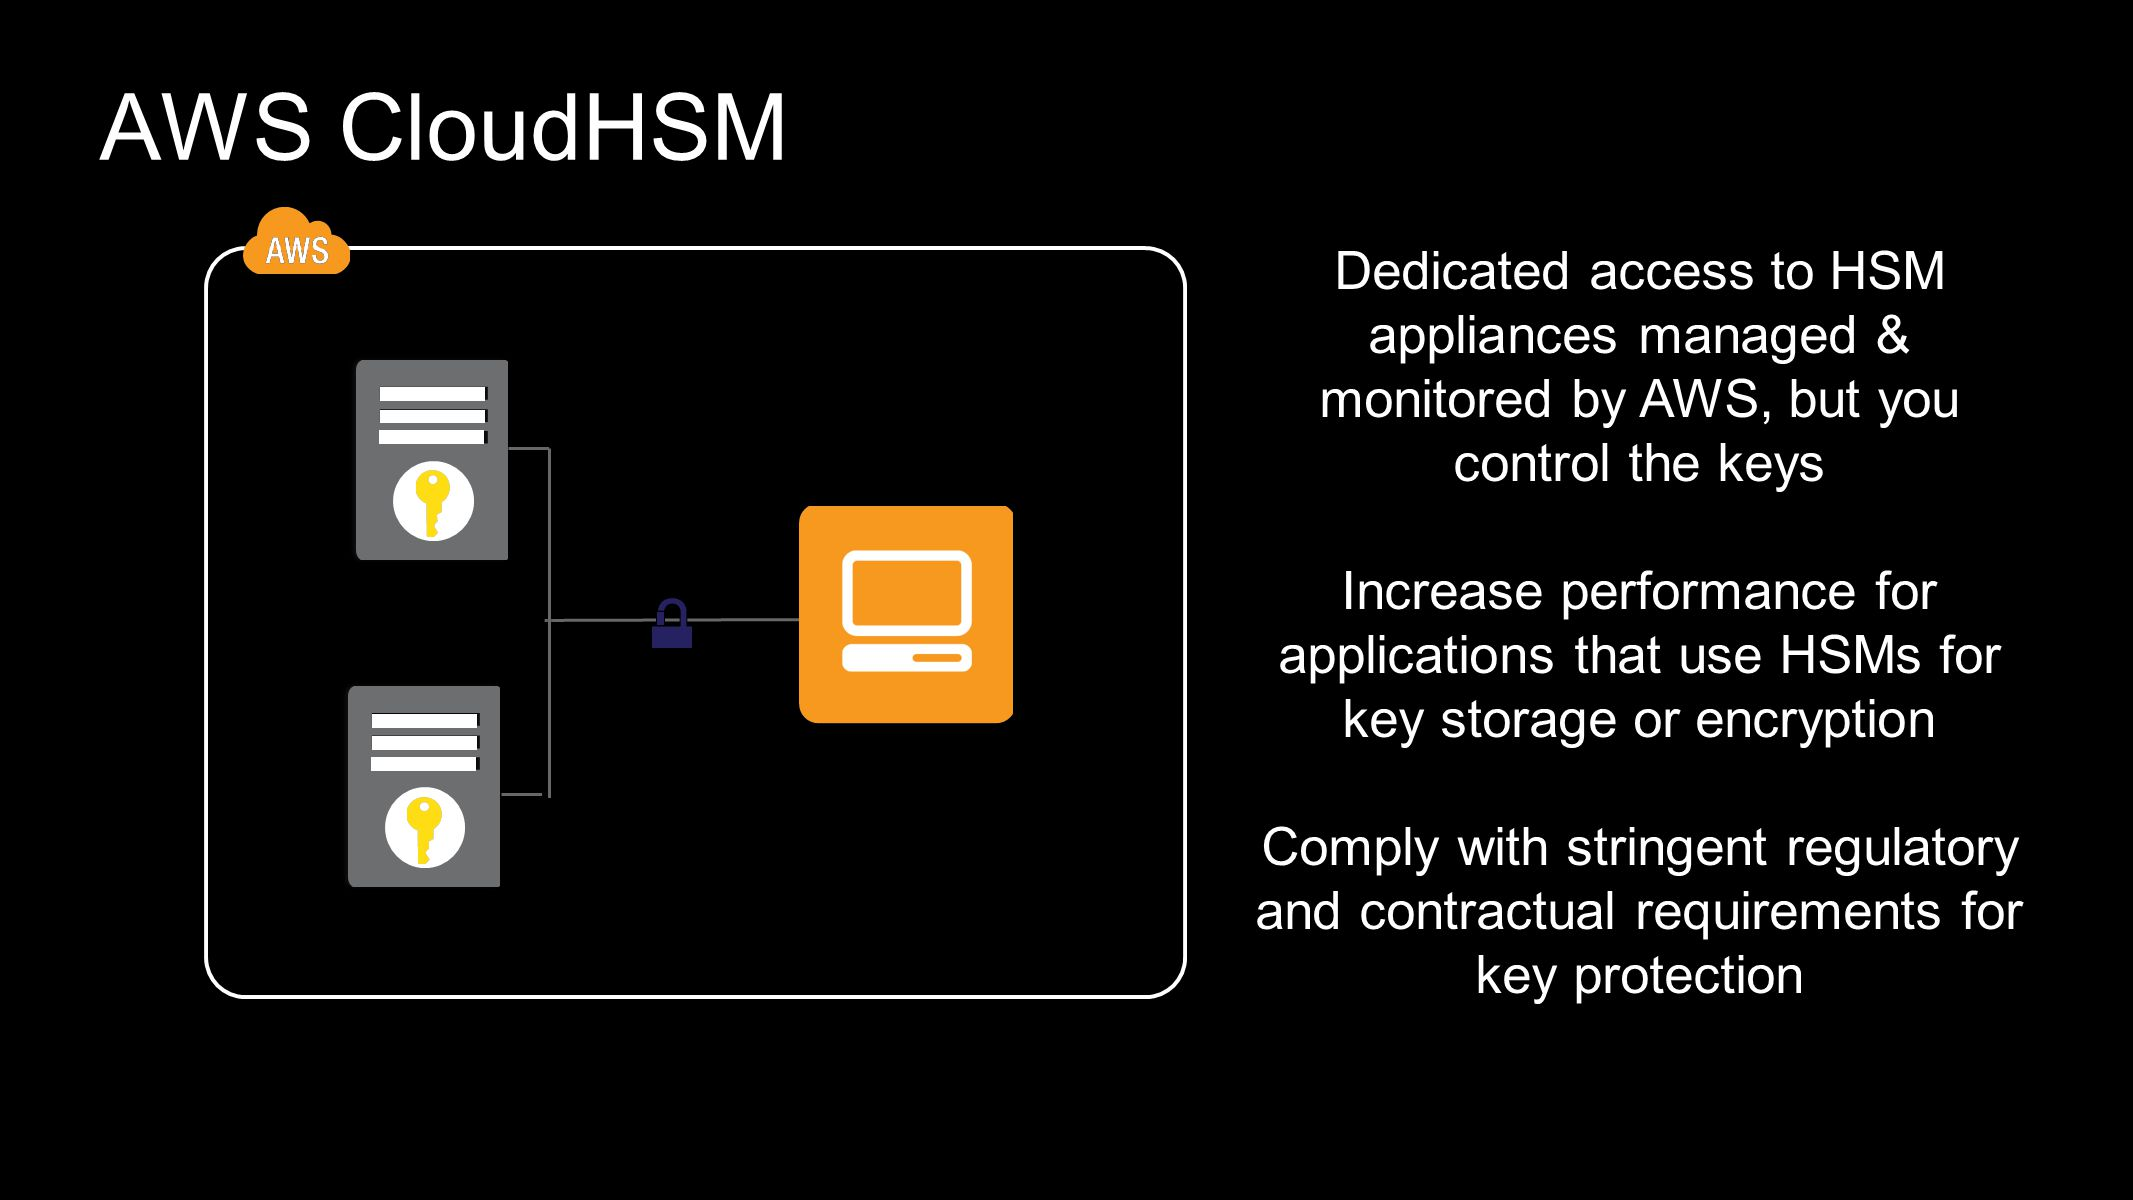 AWS CloudHSM Dedicated access to HSM appliances managed & monitored by AWS, but you control the keys Increase performance for applications that use HSMs for key storage or encryption Comply with stringent regulatory and contractual requirements for key protection EC2 Instance AWS CloudHSM